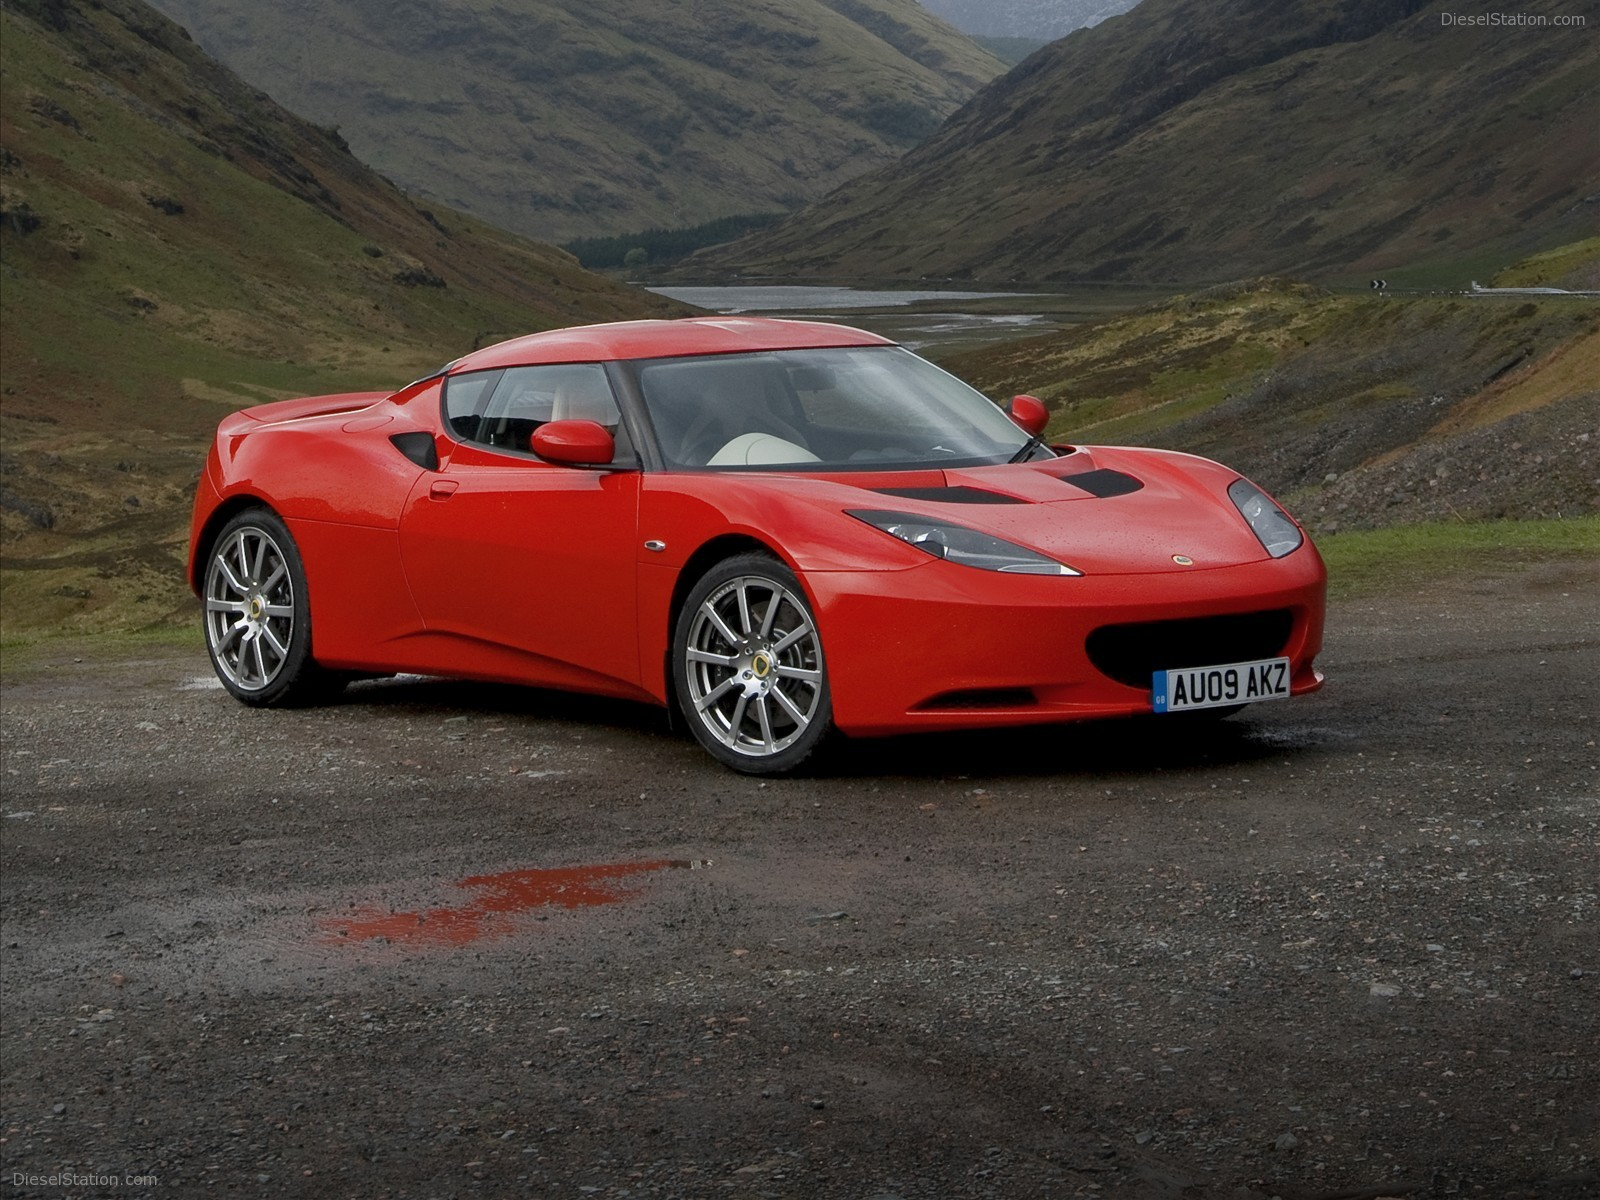 Lotus evora photo - 4